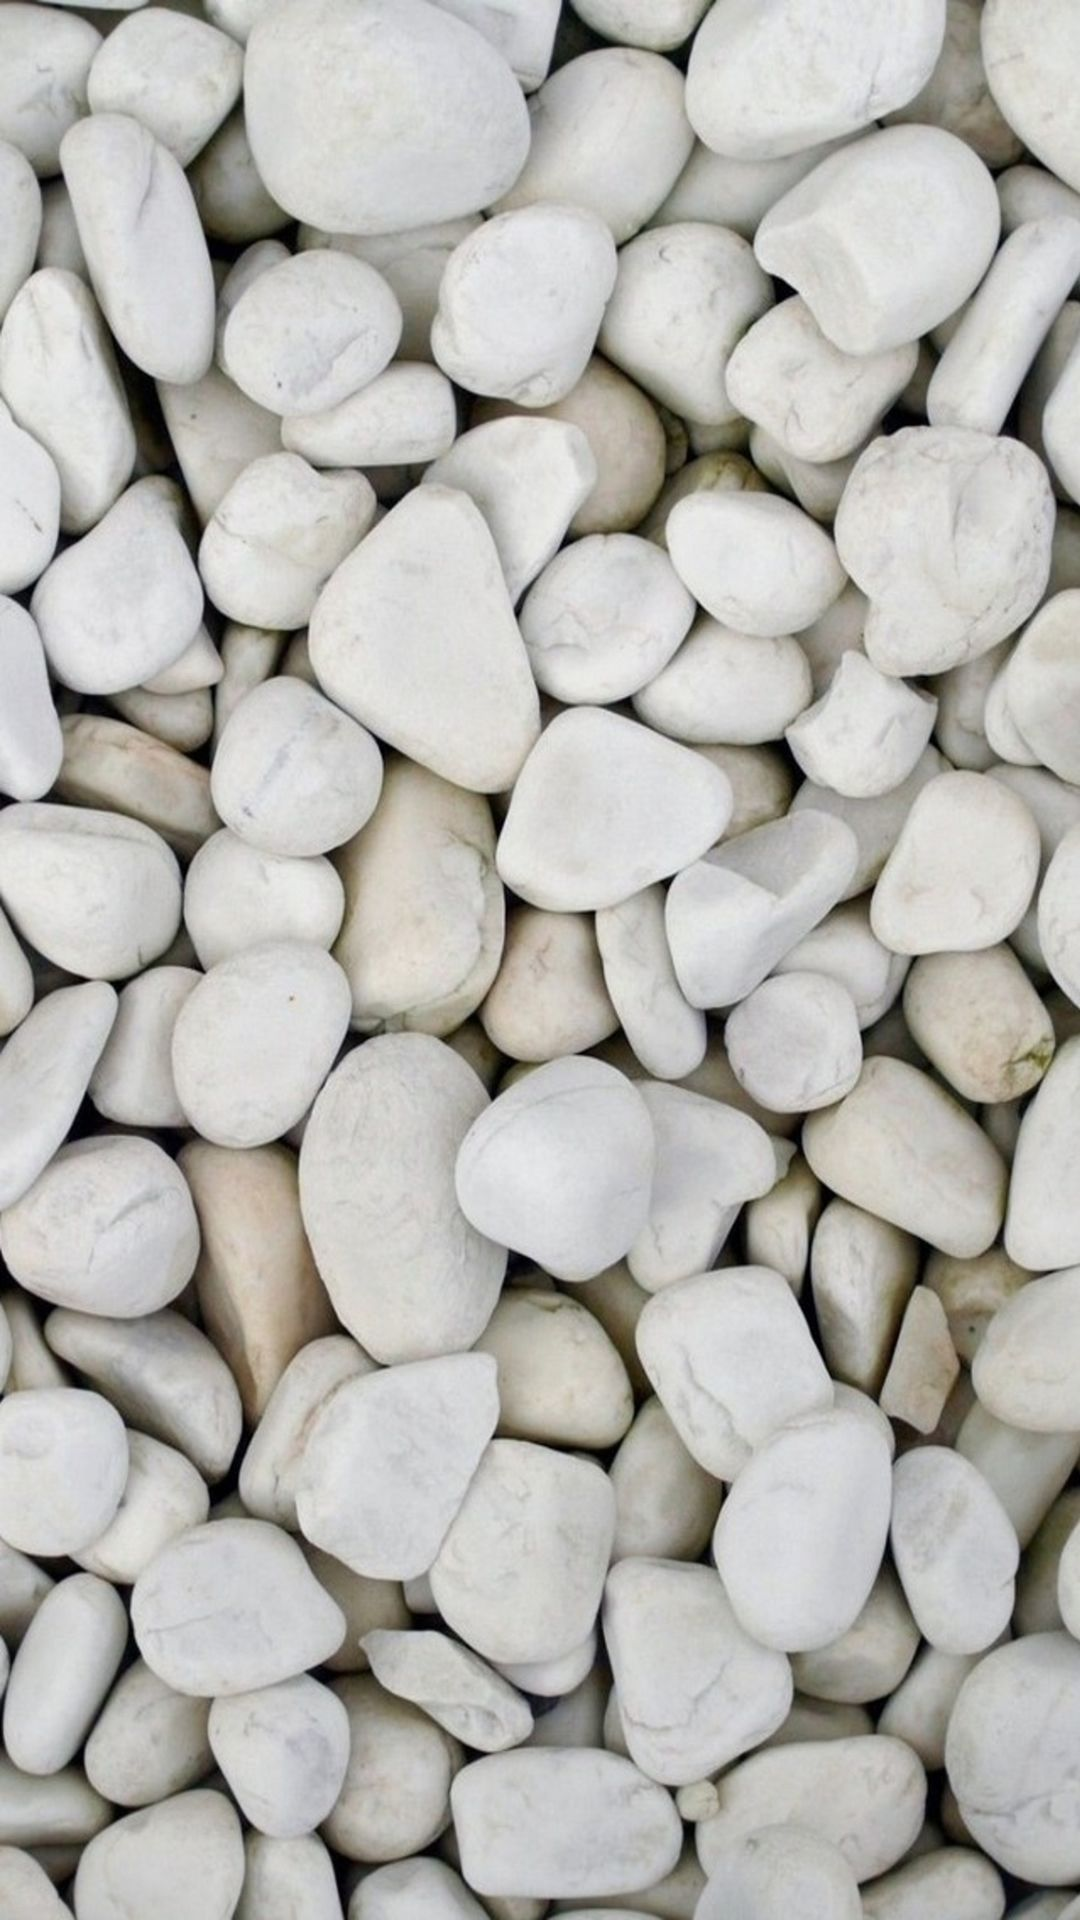 Beach White Pebble Rock Clitter Background Iphone 6